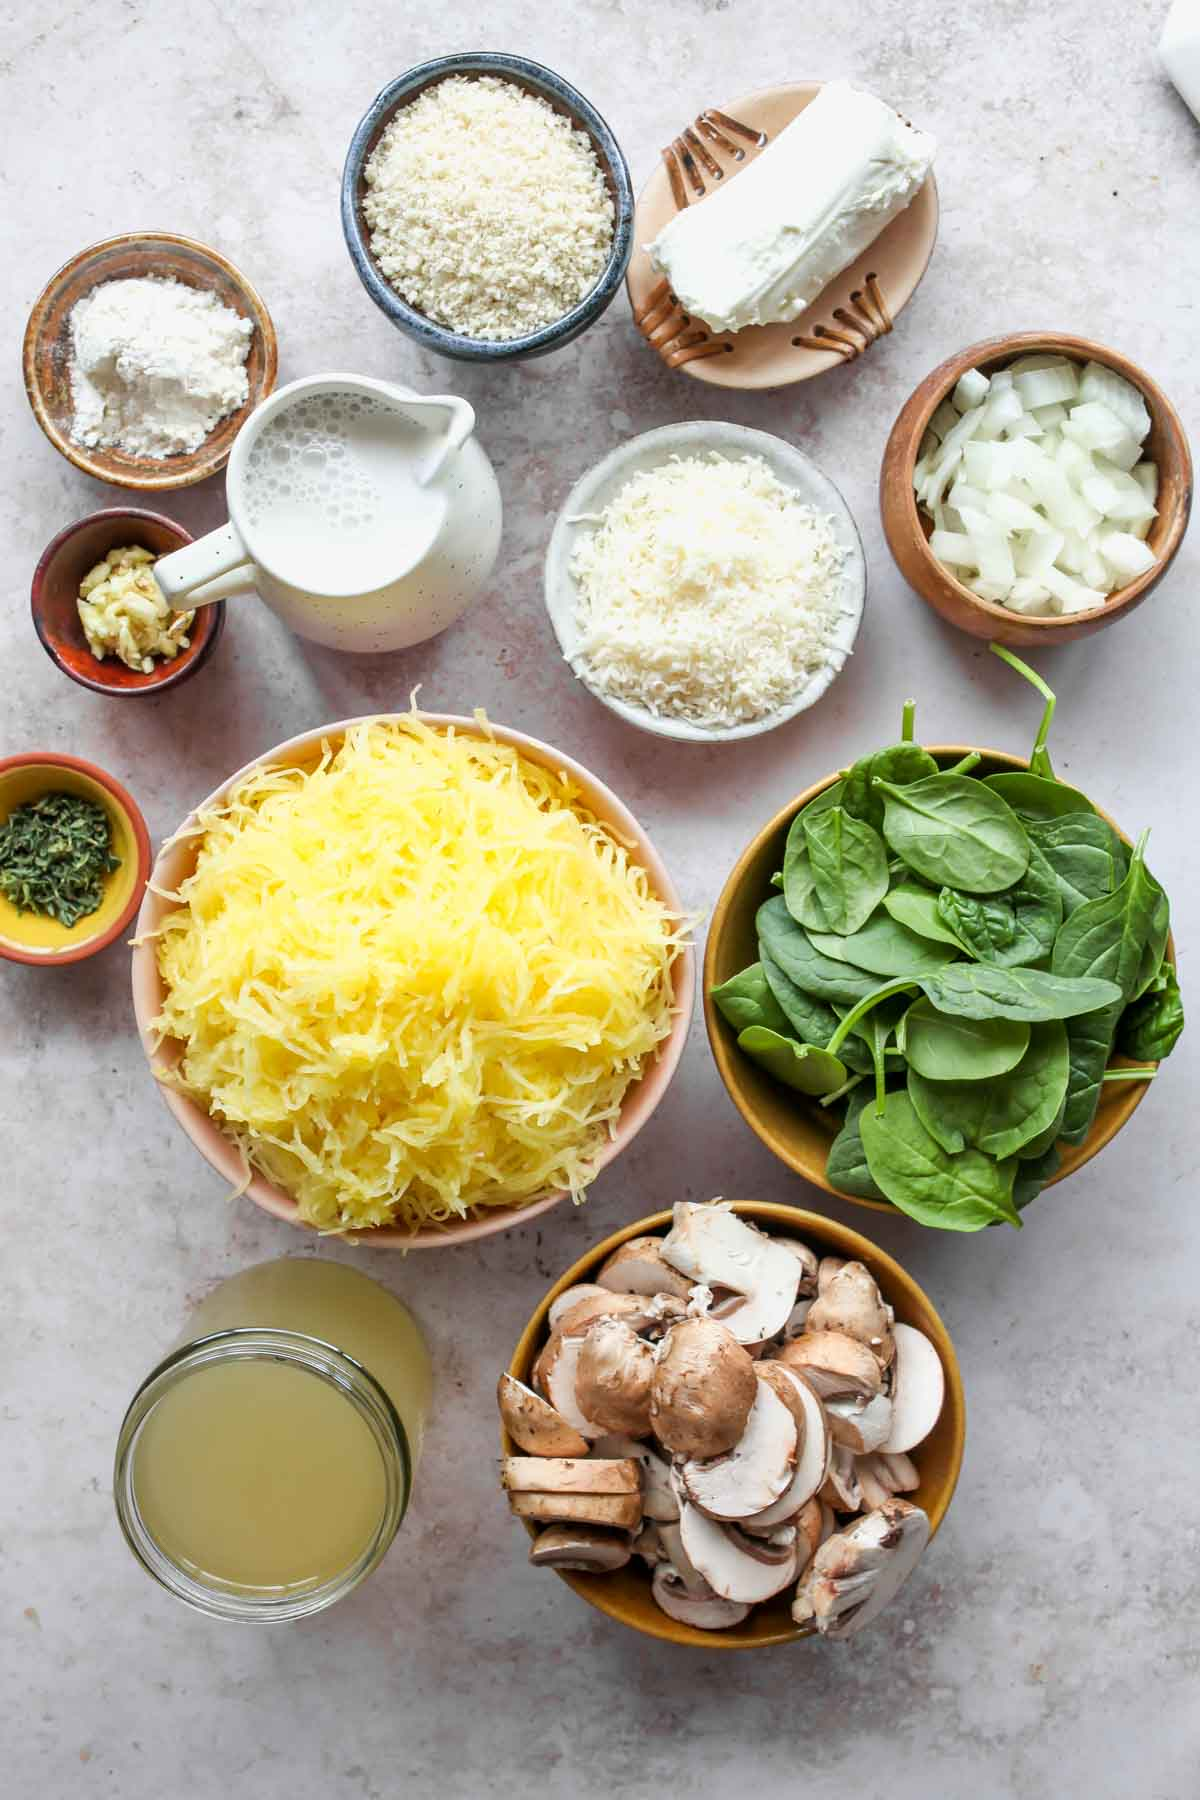 Spaghetti squash casserole ingredients in separate bowls on a white board